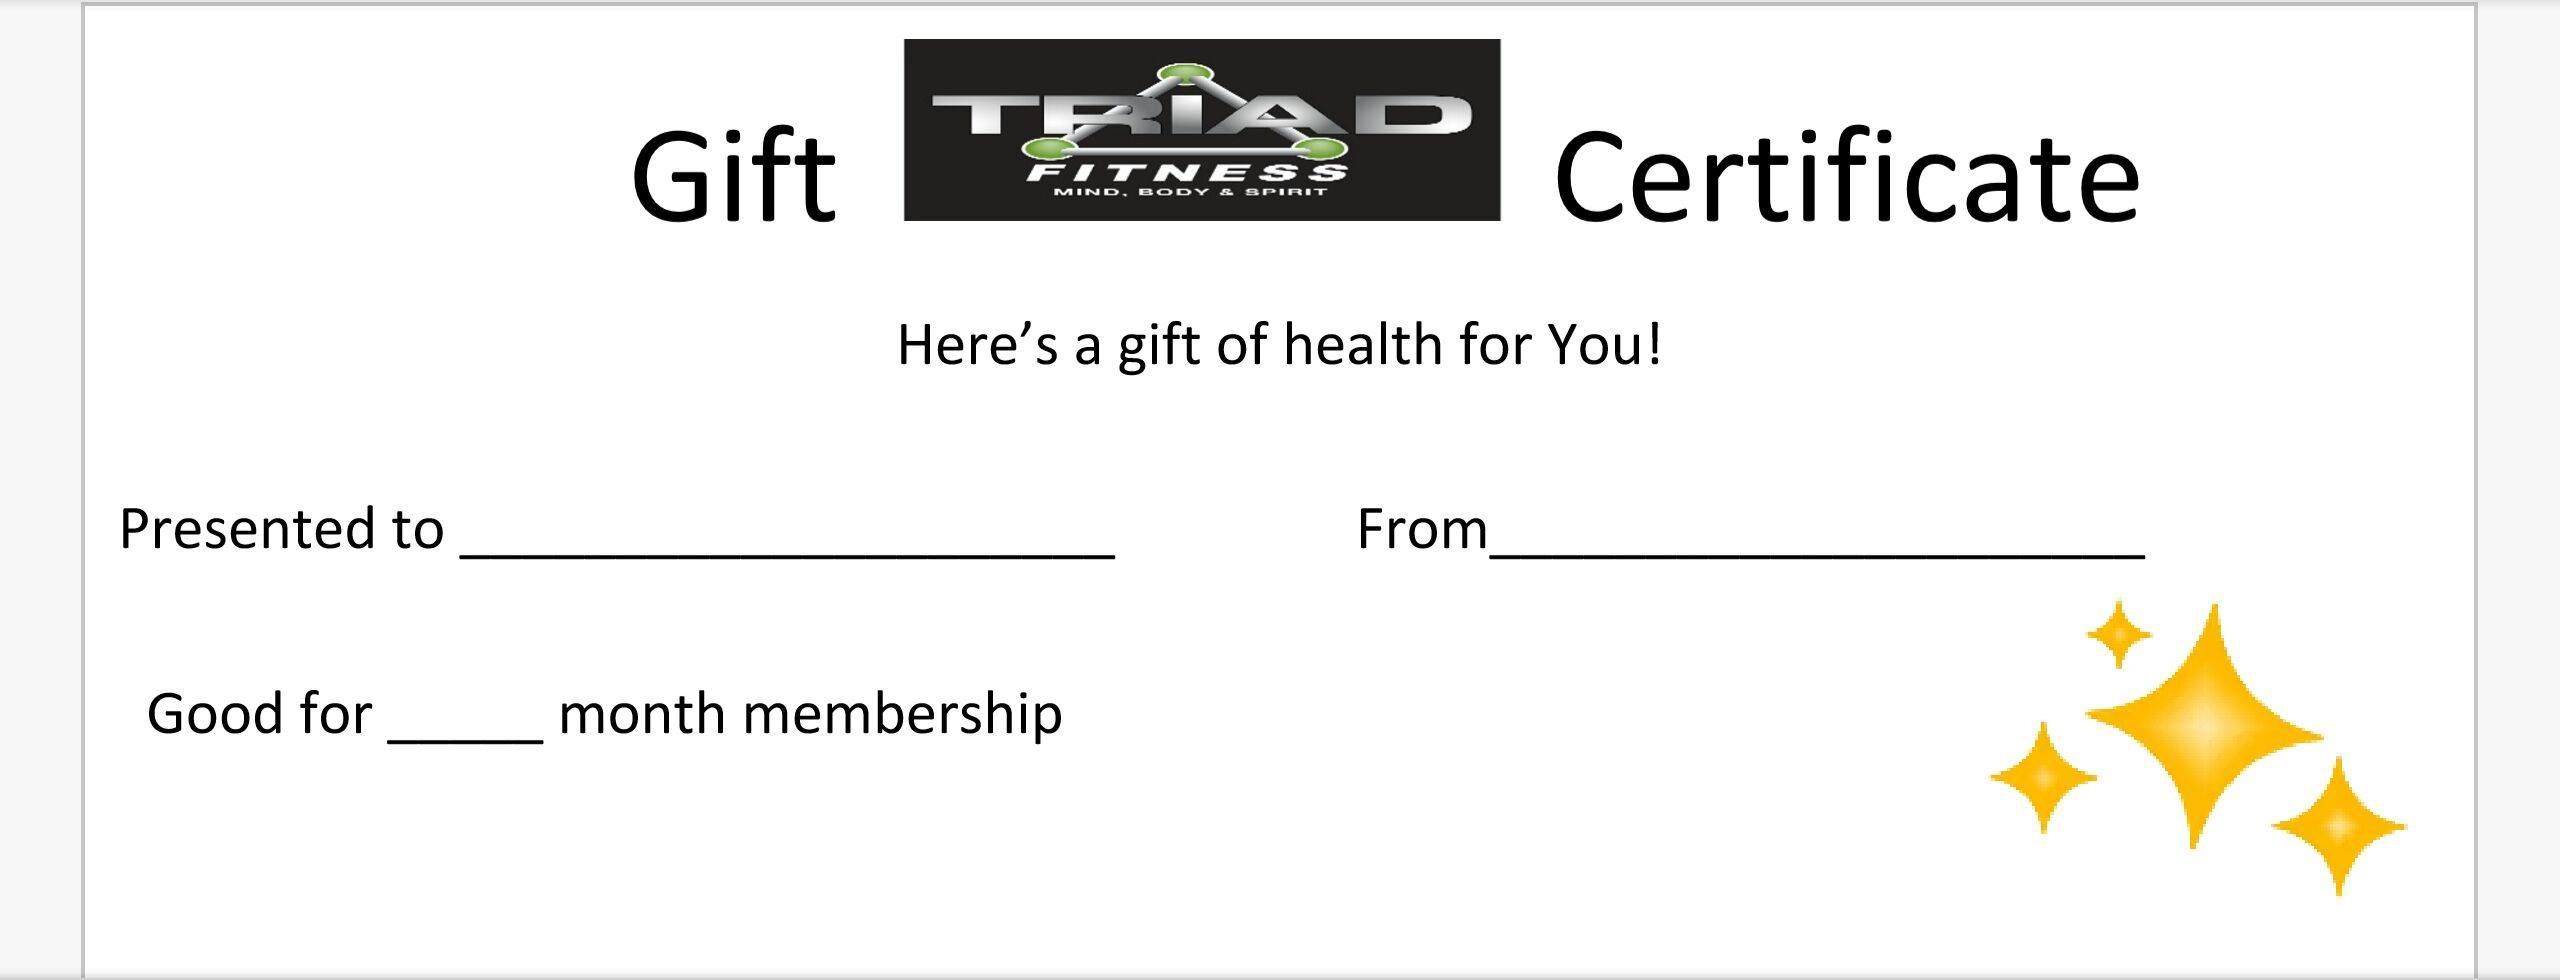 Personal Training Gift Certificate At Triad Fitness Personal